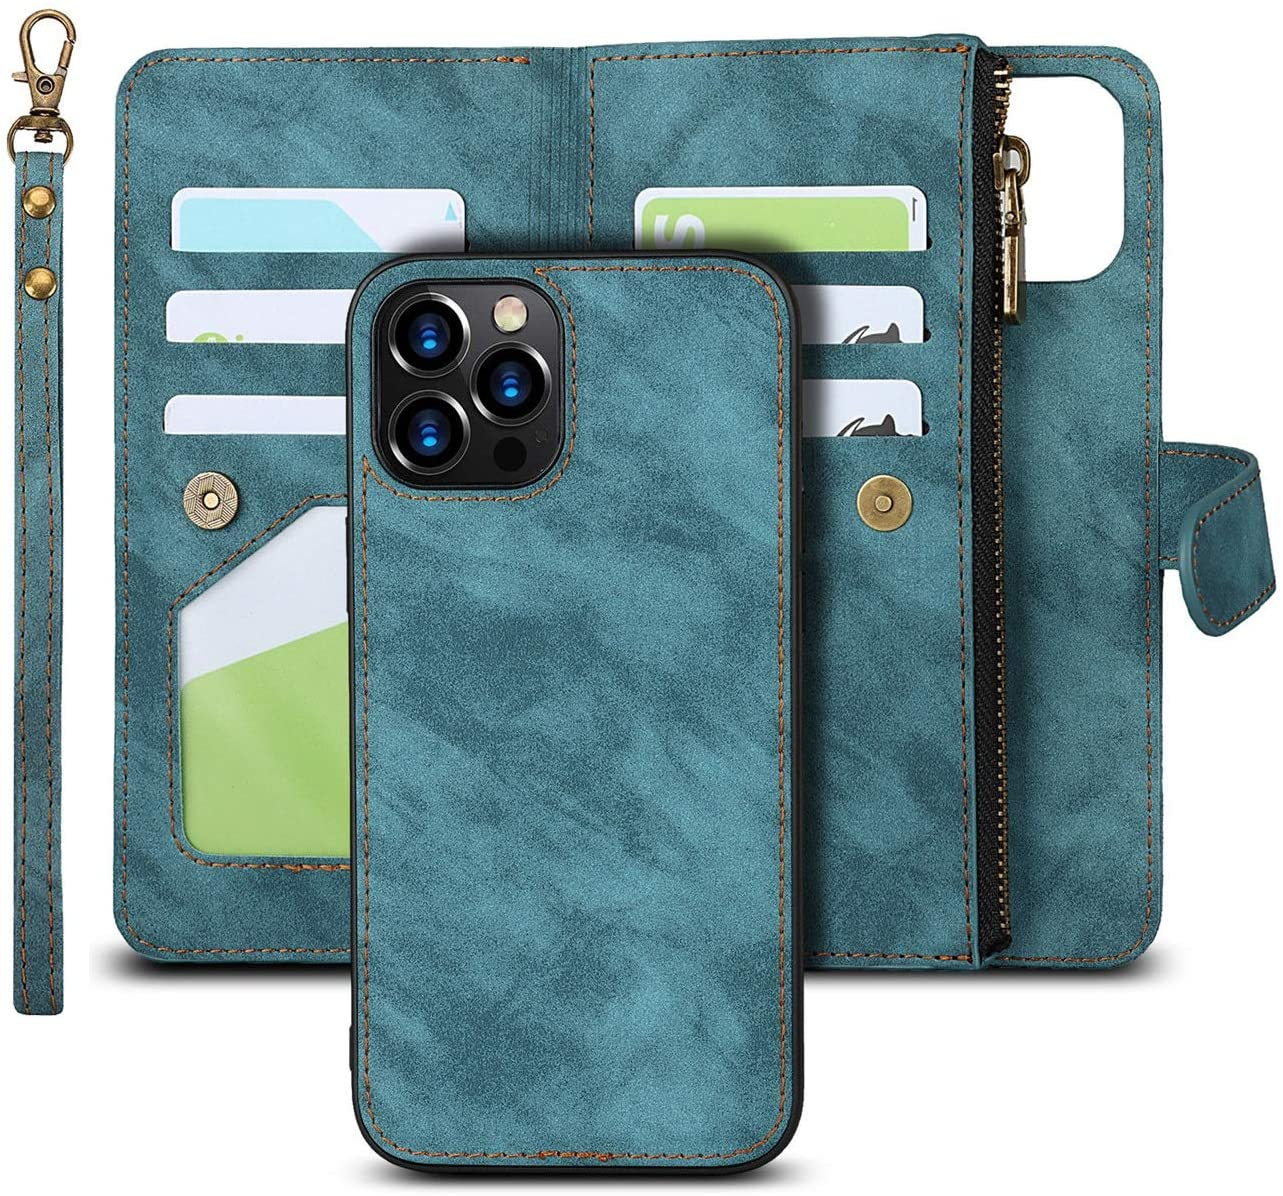 iCoverCase iPhone 12 Pro Max Wallet Case with Card Holder, 2 in 1 PU Leather Case with Magnetic Clasp Zipper Pocket Shockproof Detachable Flip Case with Wrist Strap for iPhone 12 Pro Max (Blue)